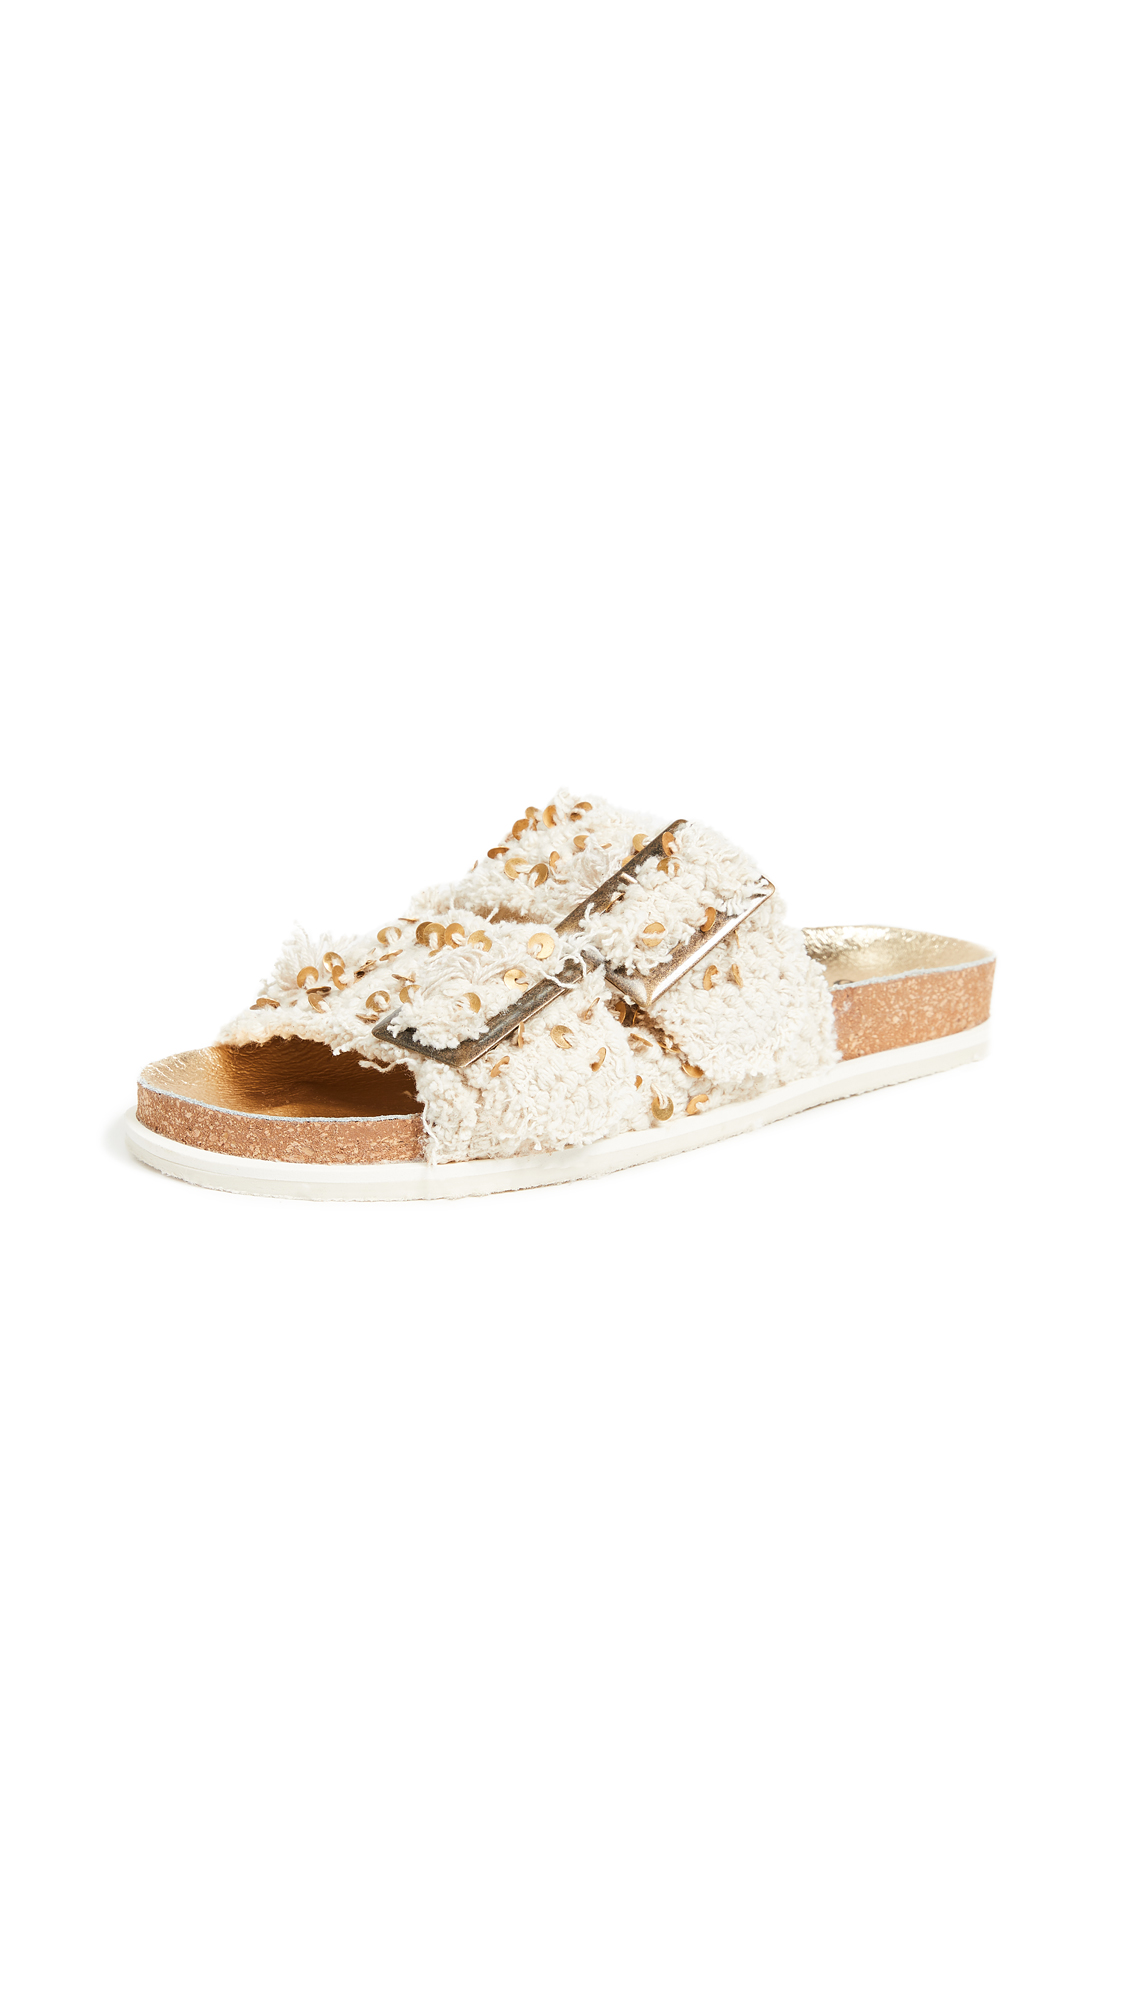 Free People Bali Footbed Slides - Cream